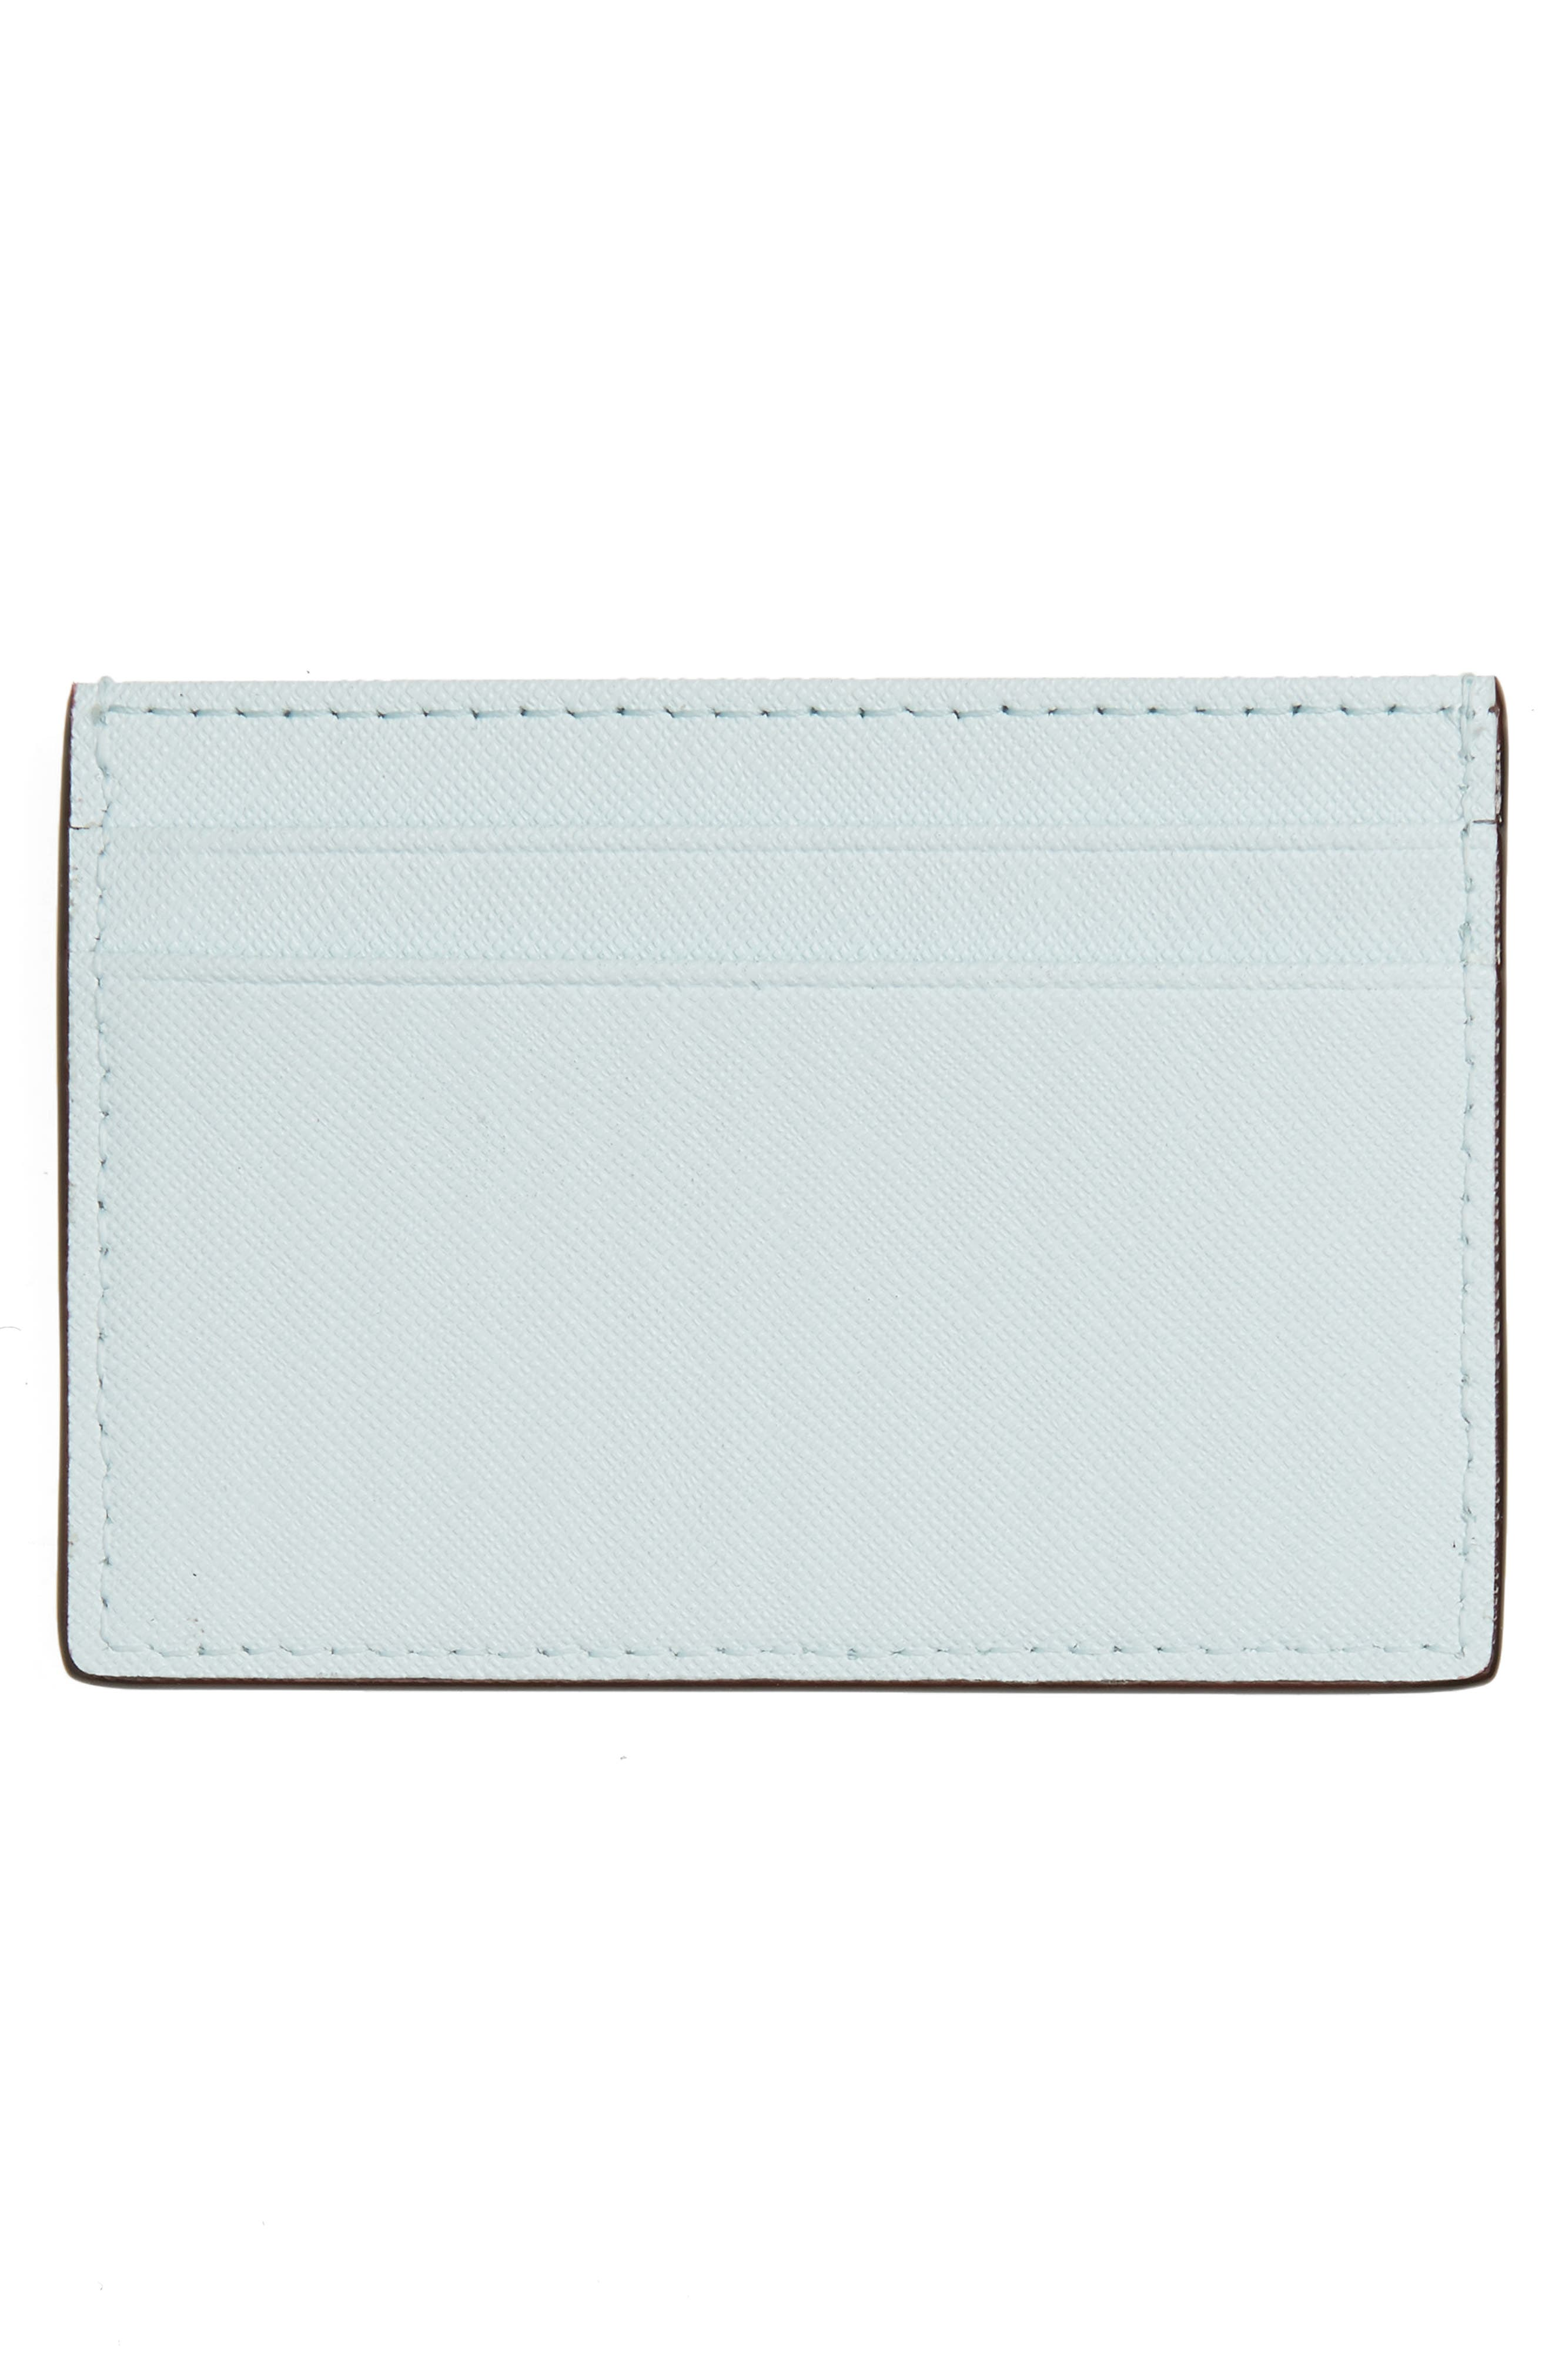 cameron street card holder,                             Alternate thumbnail 21, color,